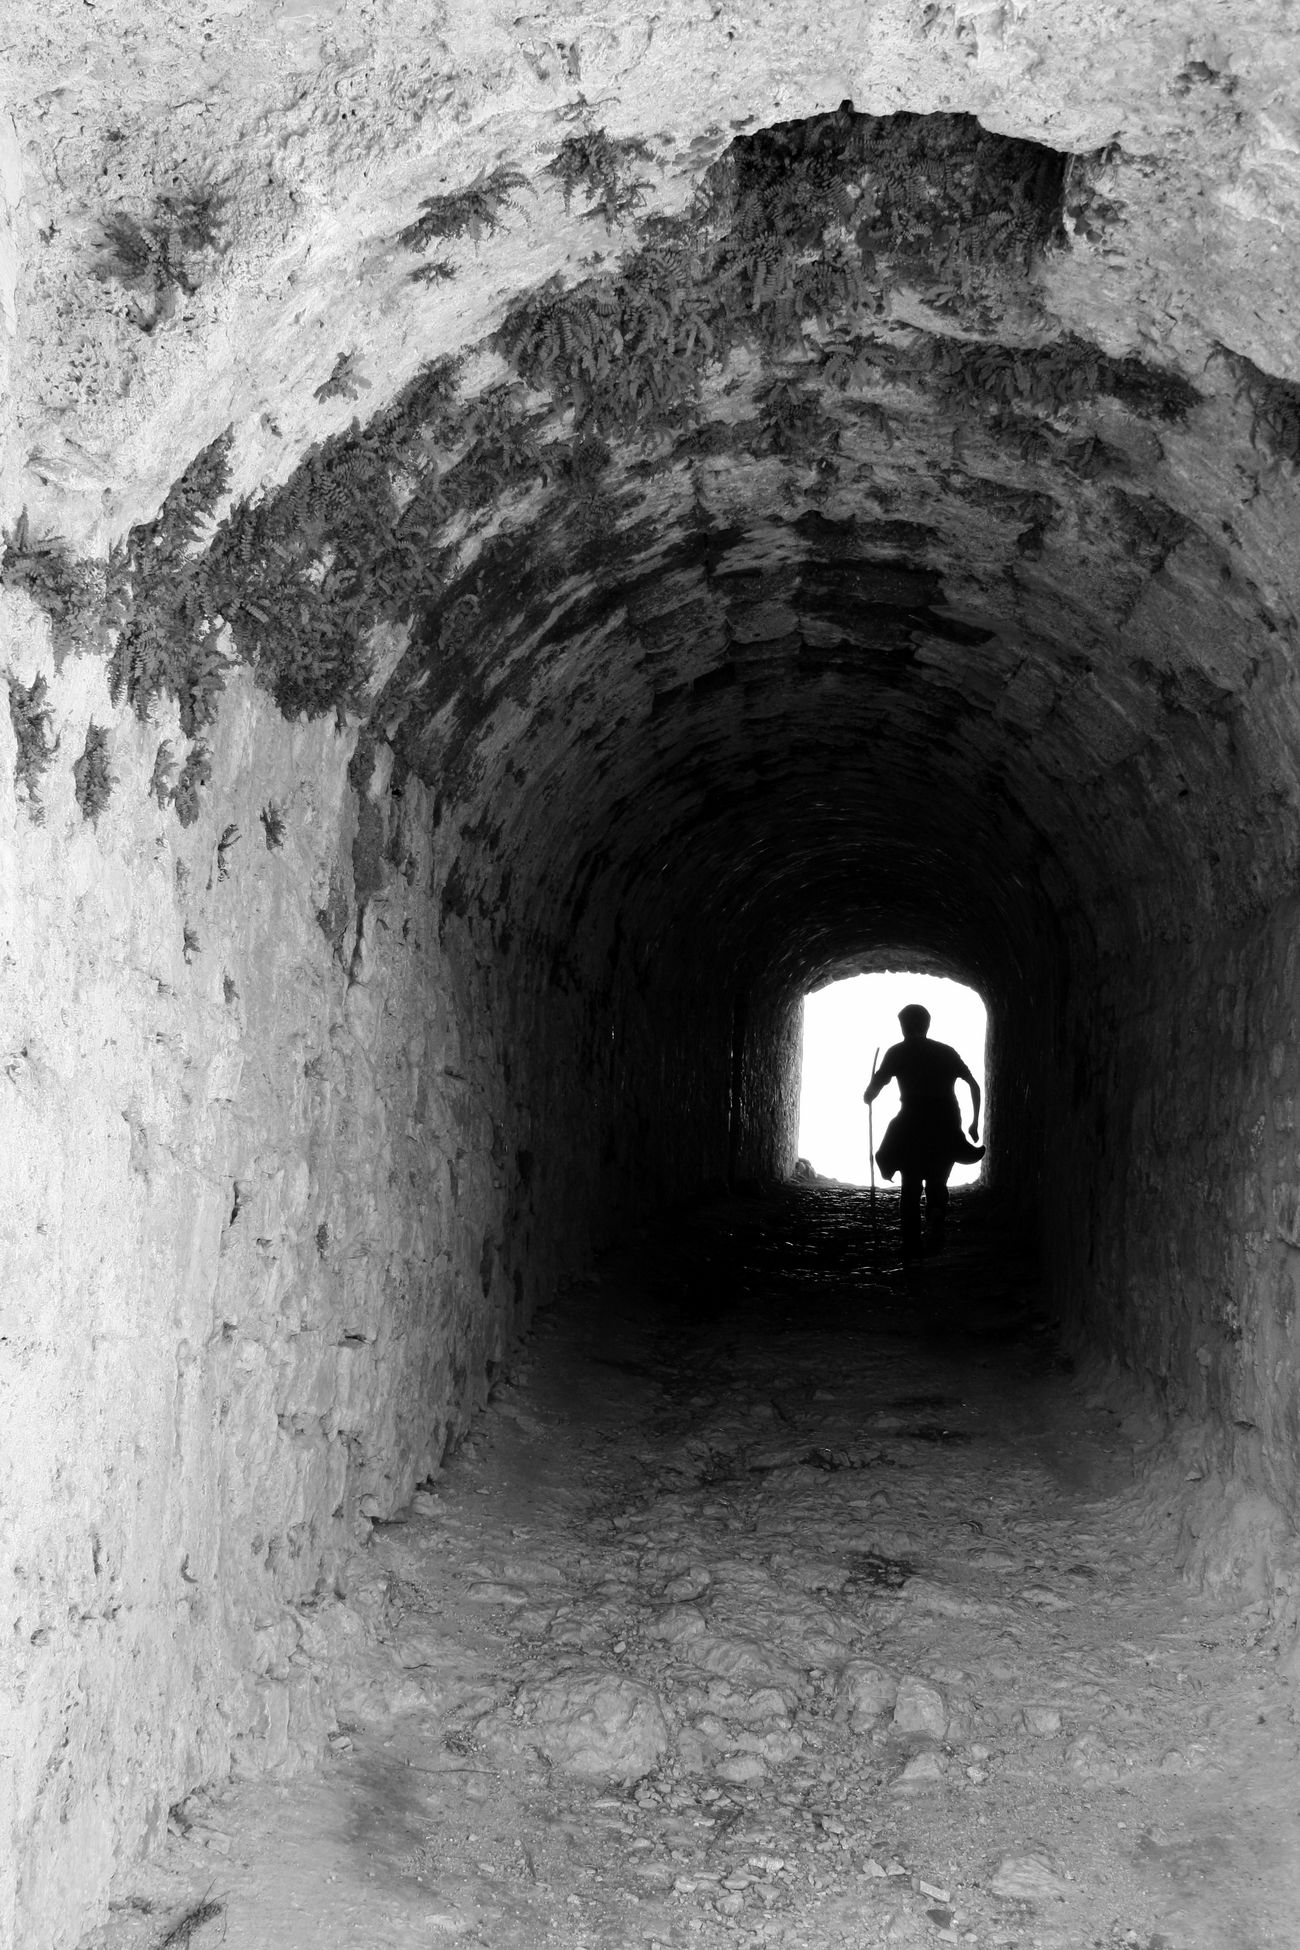 Castle Day Indoors  Lifestyles Light At The End Of The Tunnel Men Nature Old Buildings One Man Only One Person Only Men People Real People Ruin Running Silhouette Silhouette The Way Forward Tunnel